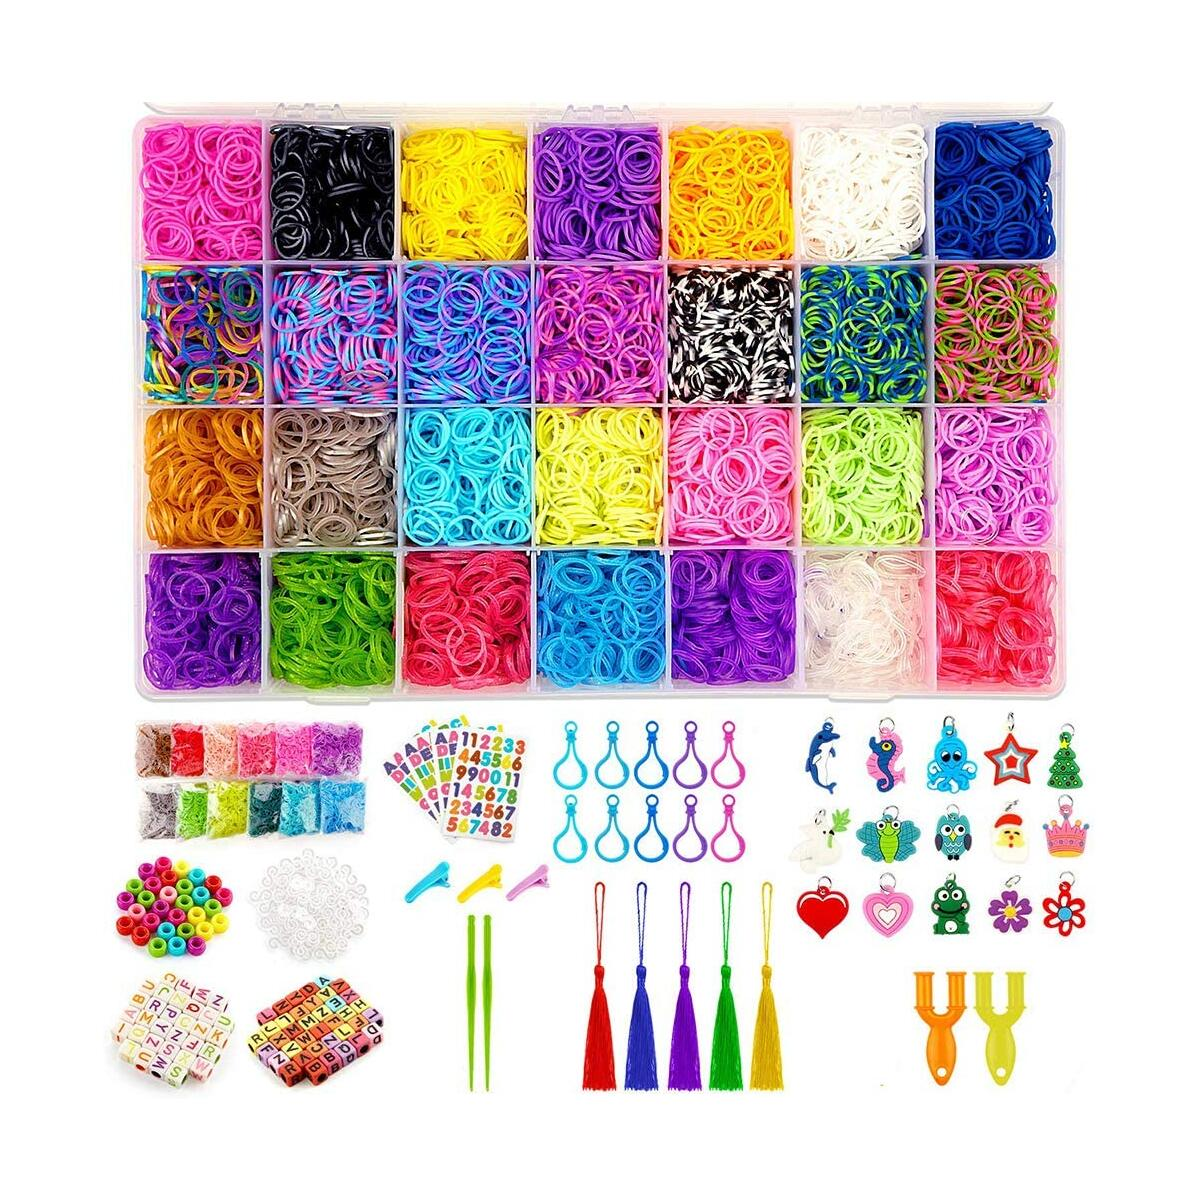 WISHTIME Rainbow Rubber Bands Girls Toys - 11700+ pcs DIY Bracelet Making Kit Includes 10000+ Loom Bands in 28 Colors, 175 Beads, 30 Charms, 5 Tassels, 5 Crochet Hooks, 3 Hair Clips, 2 Y Looms